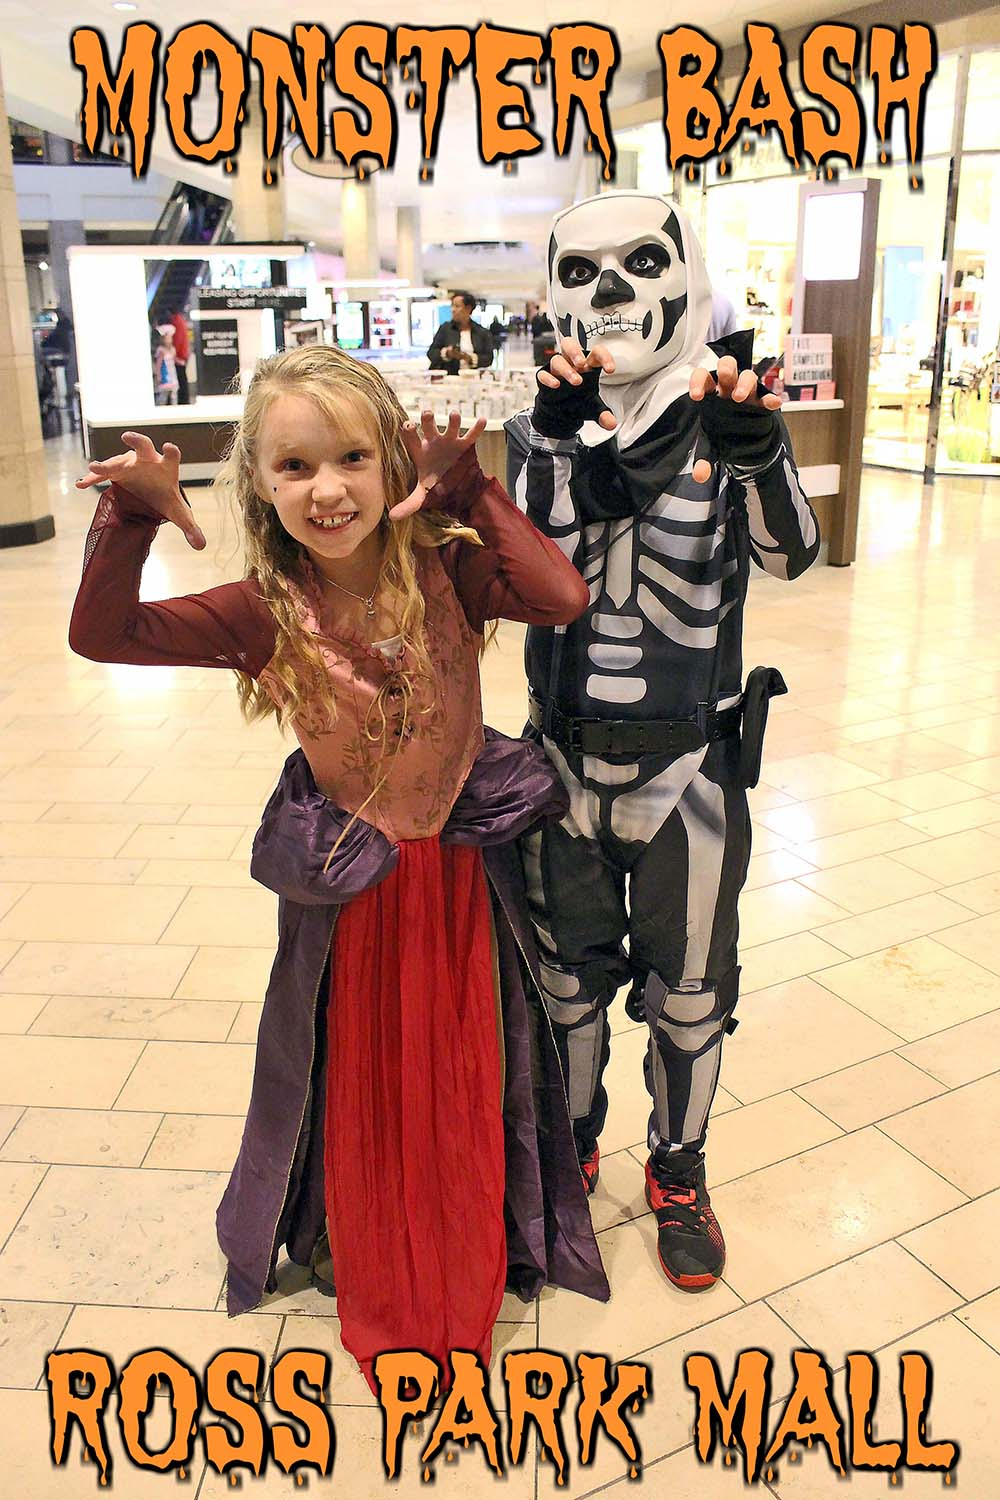 free family fun in pittsburgh, pa | halloween monster bash